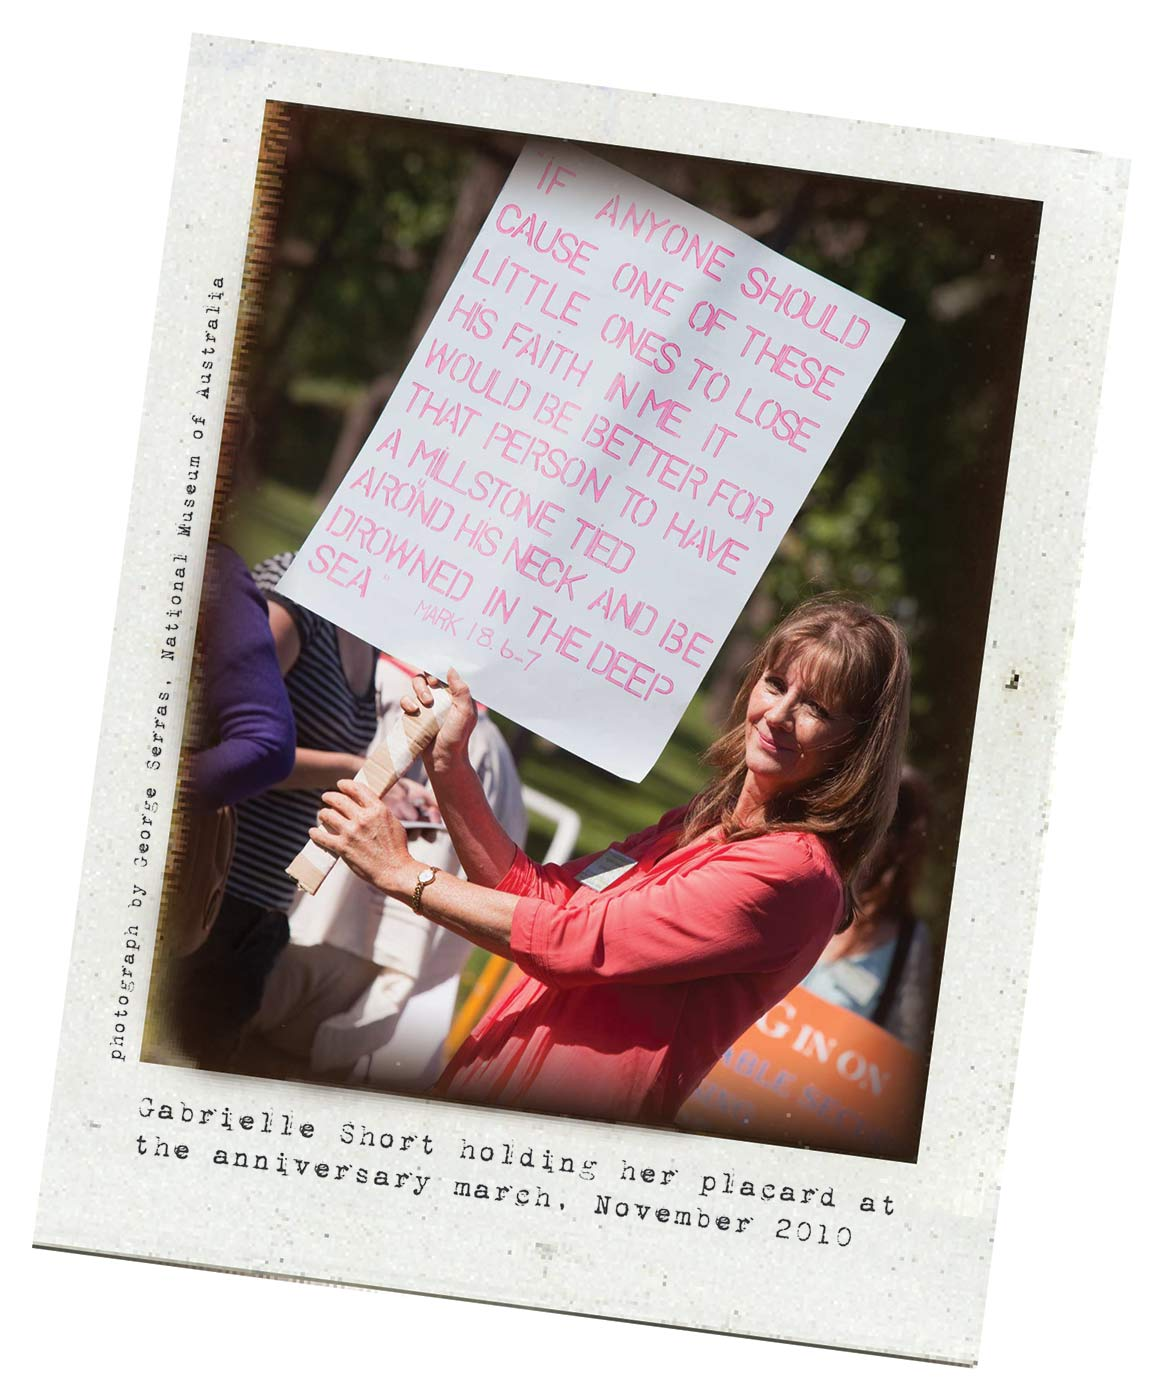 A Polaroid photo of a woman holding a banner on a white cardboard sheet. Typewritten text below reads 'Gabrielle Short holding her placard at the anniversary march, November 2010.' 'Photograph by George Serras, National Museum of Australia' is printed along the left side. - click to view larger image